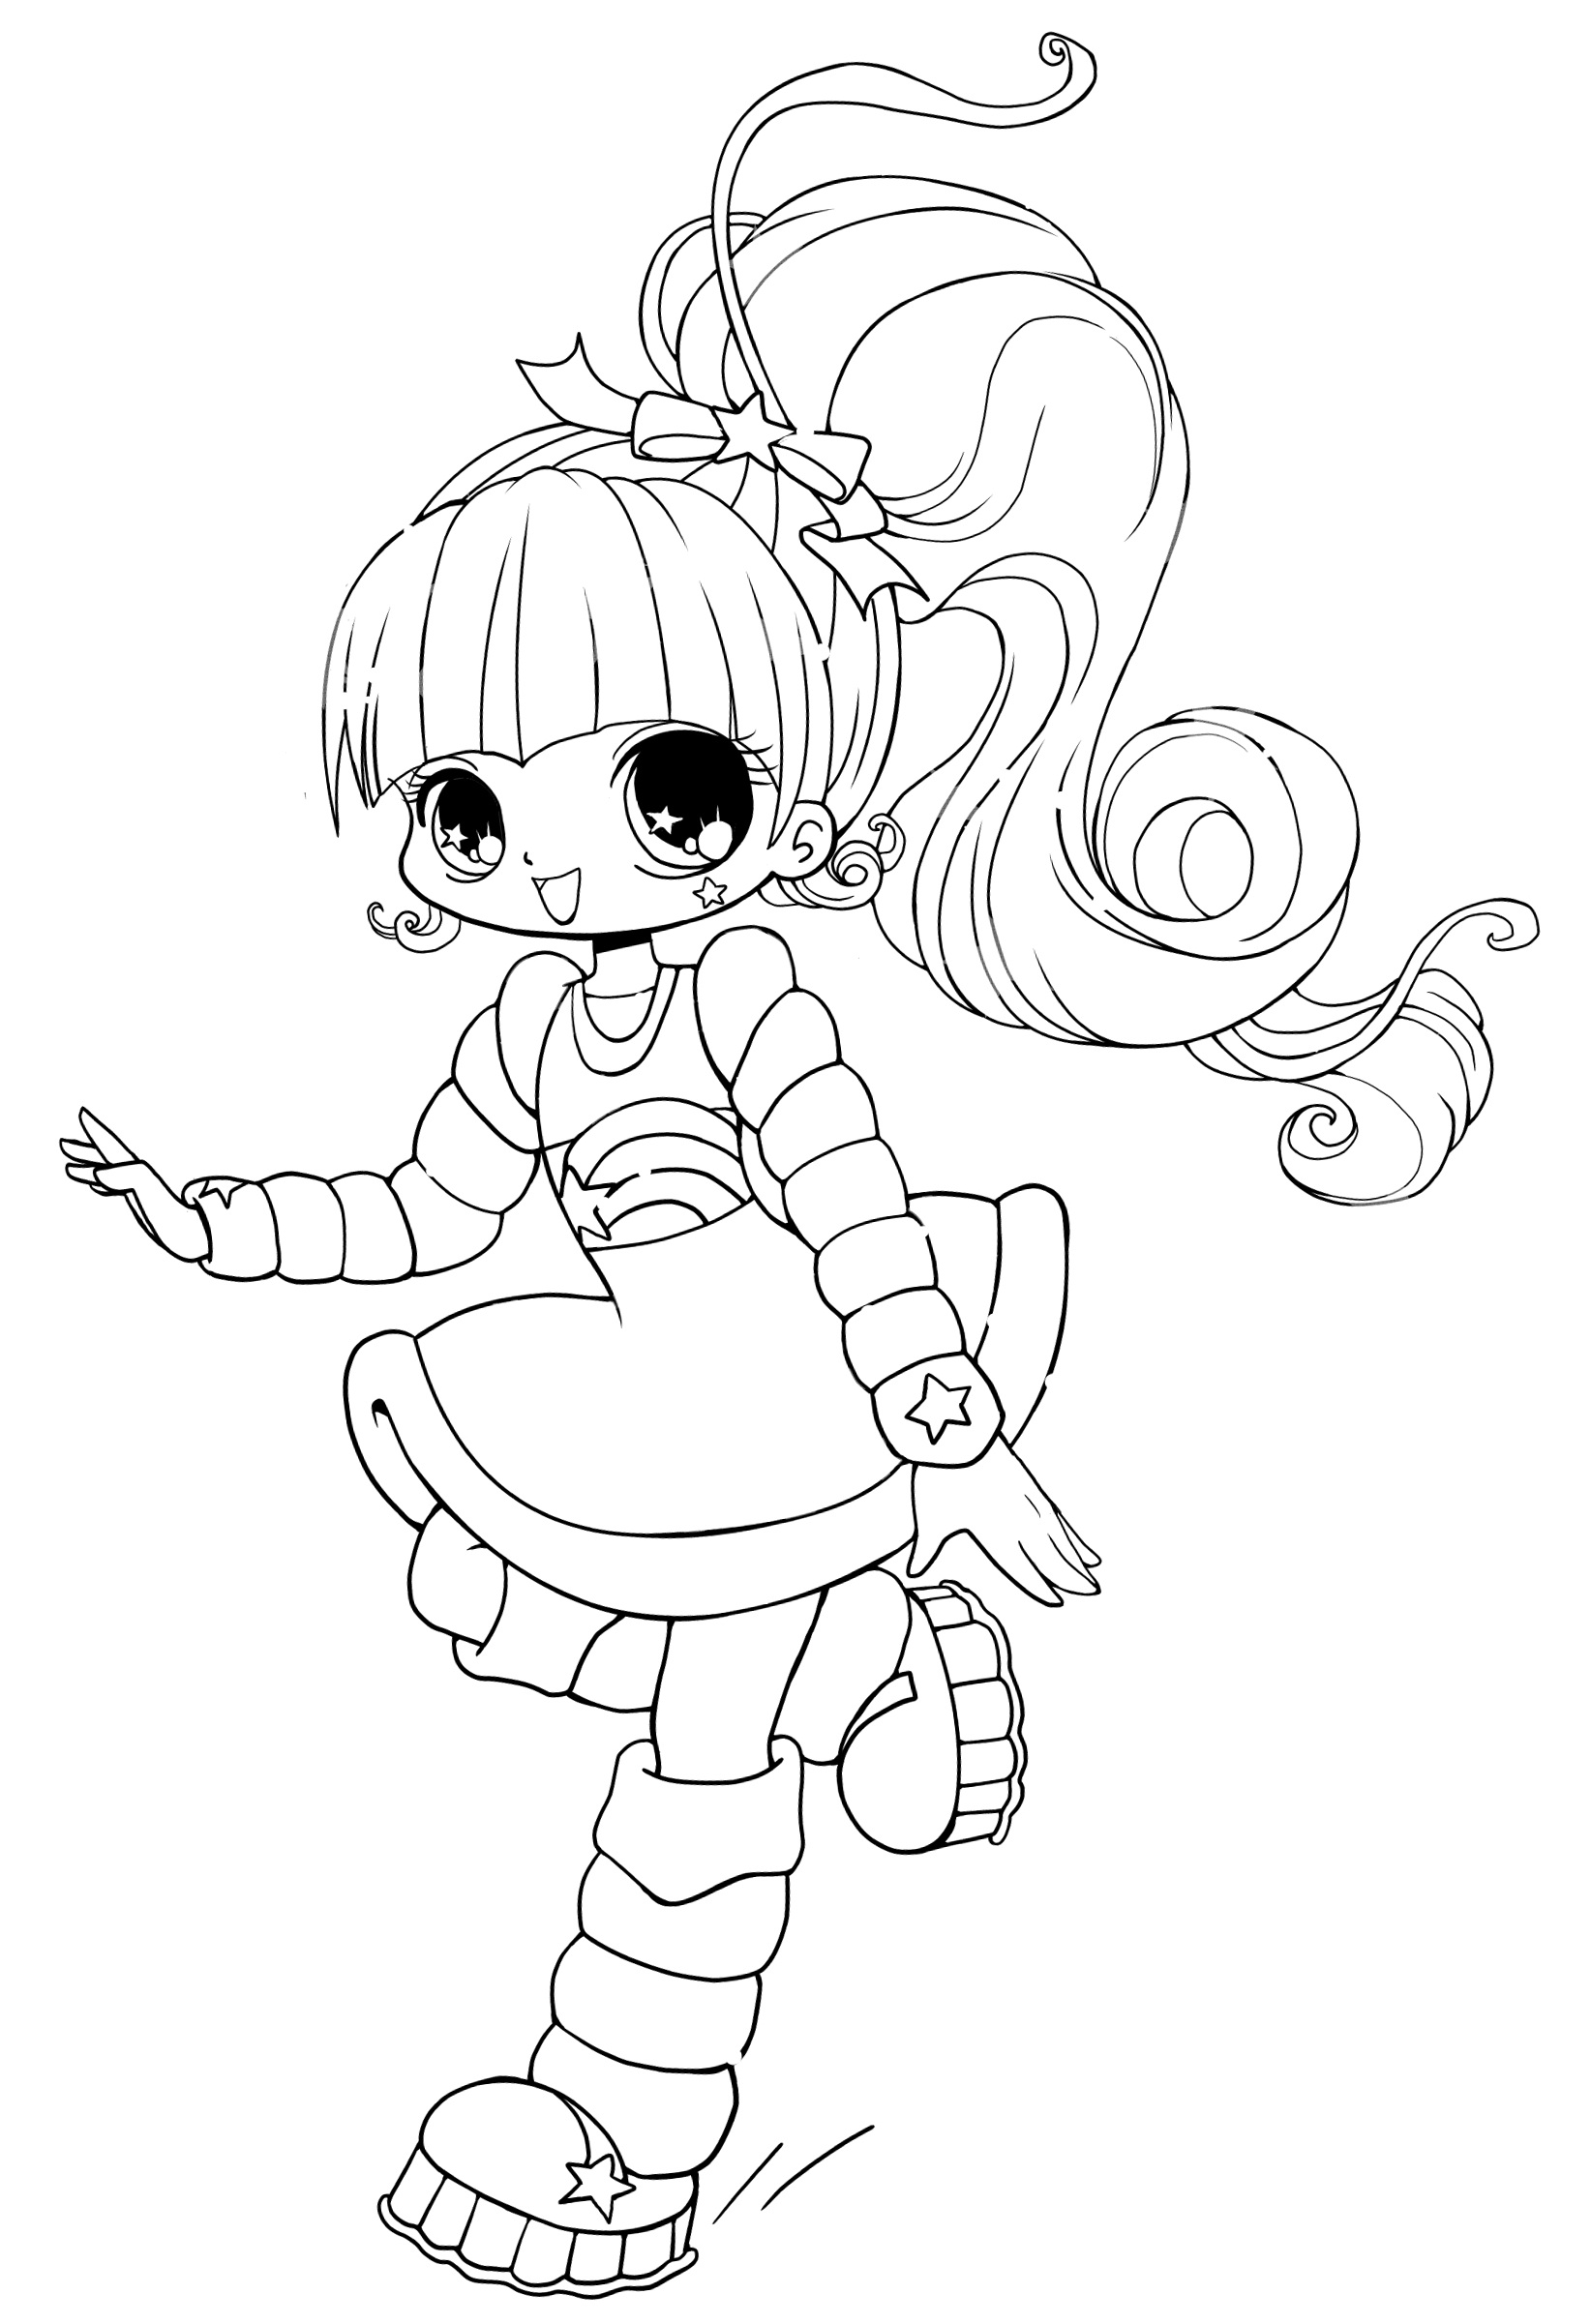 cute chibi girl coloring pages chibis free chibi coloring pages yampuff39s stuff coloring pages chibi cute girl 1 1